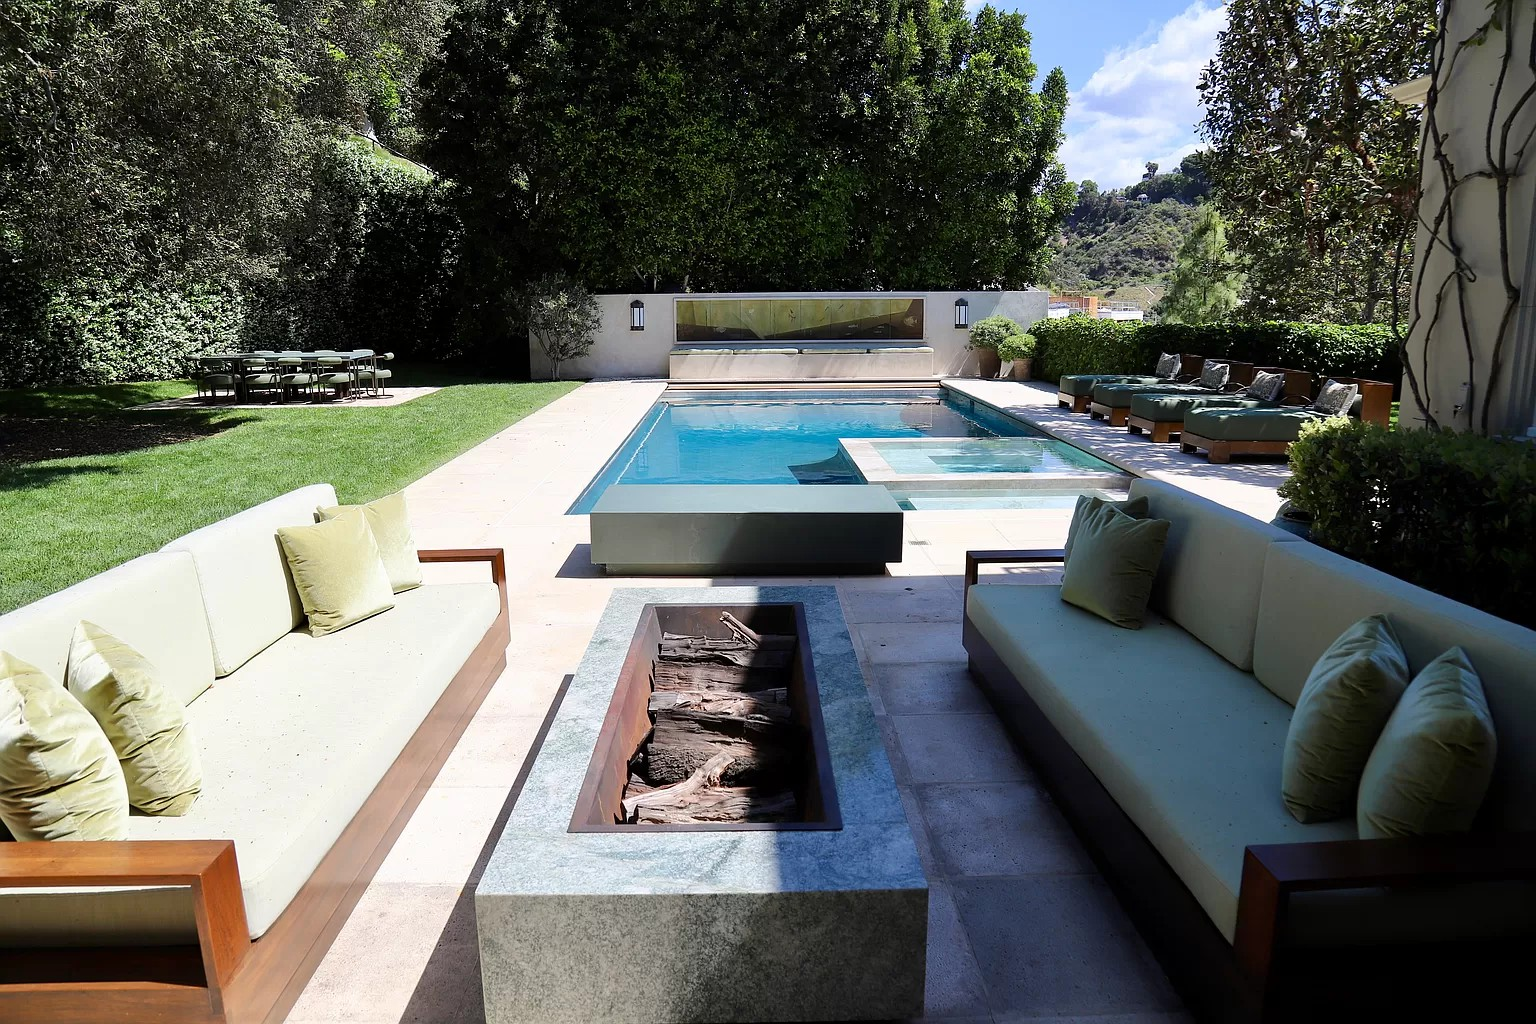 Firepit and pool